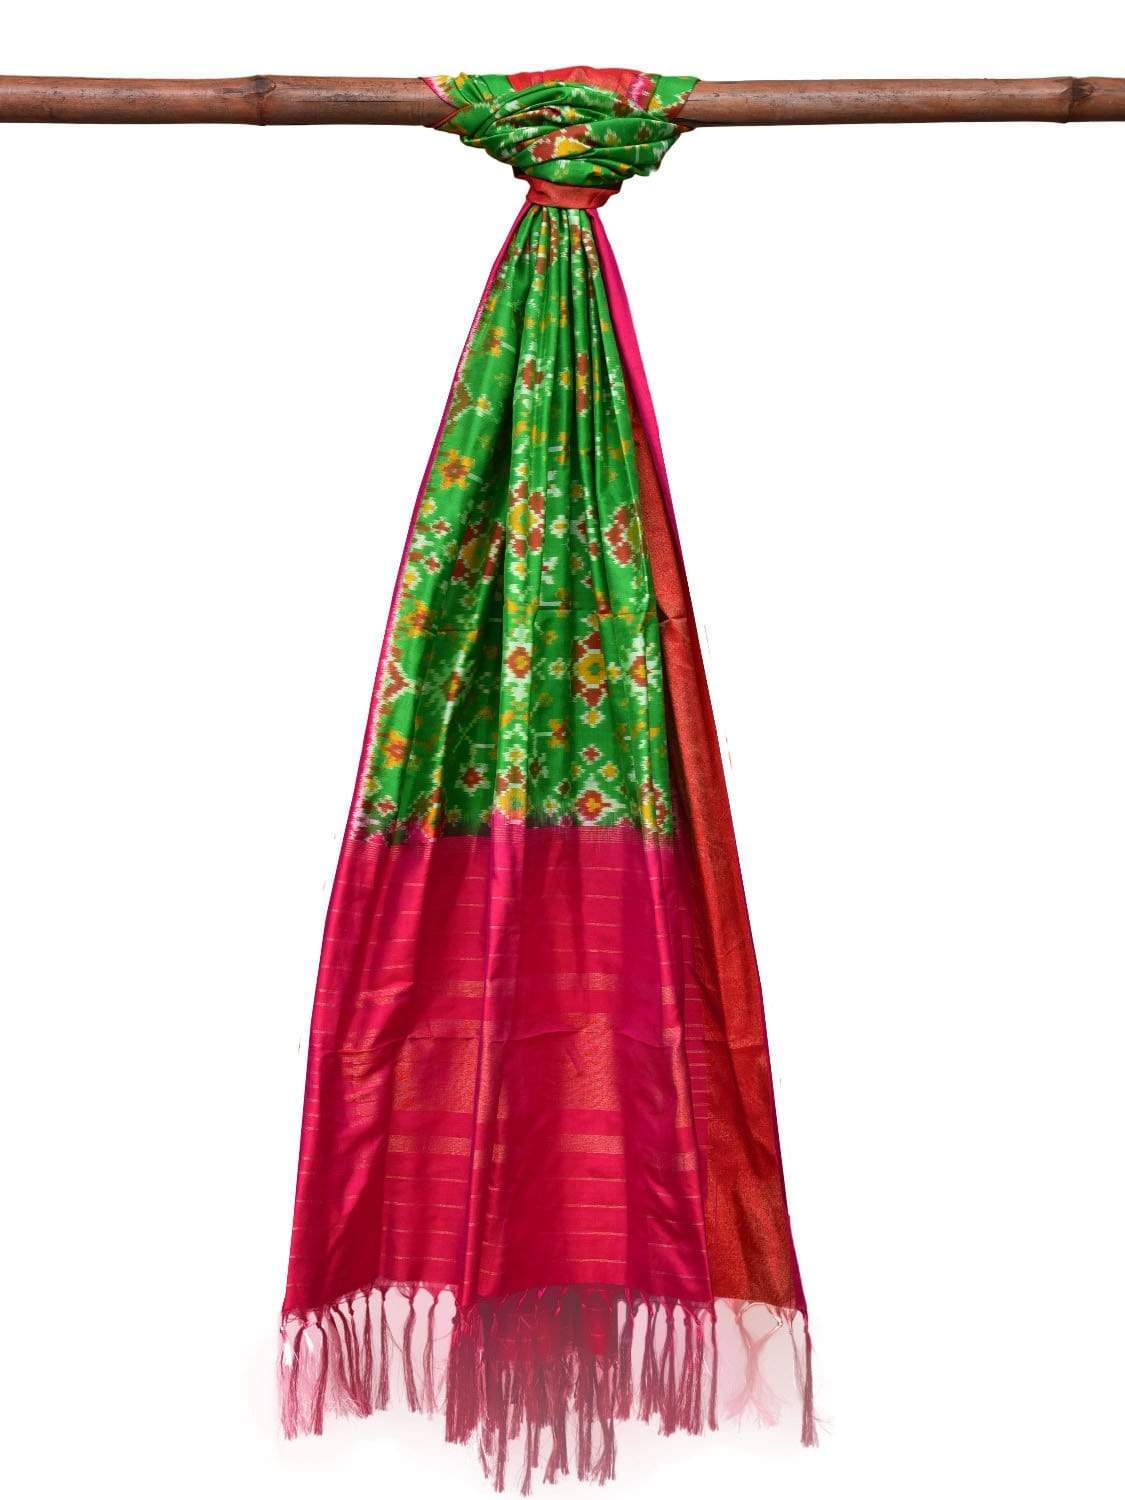 Blue and Pink Pochampally Ikat Silk Handloom Dupatta with All Over Design ds2035